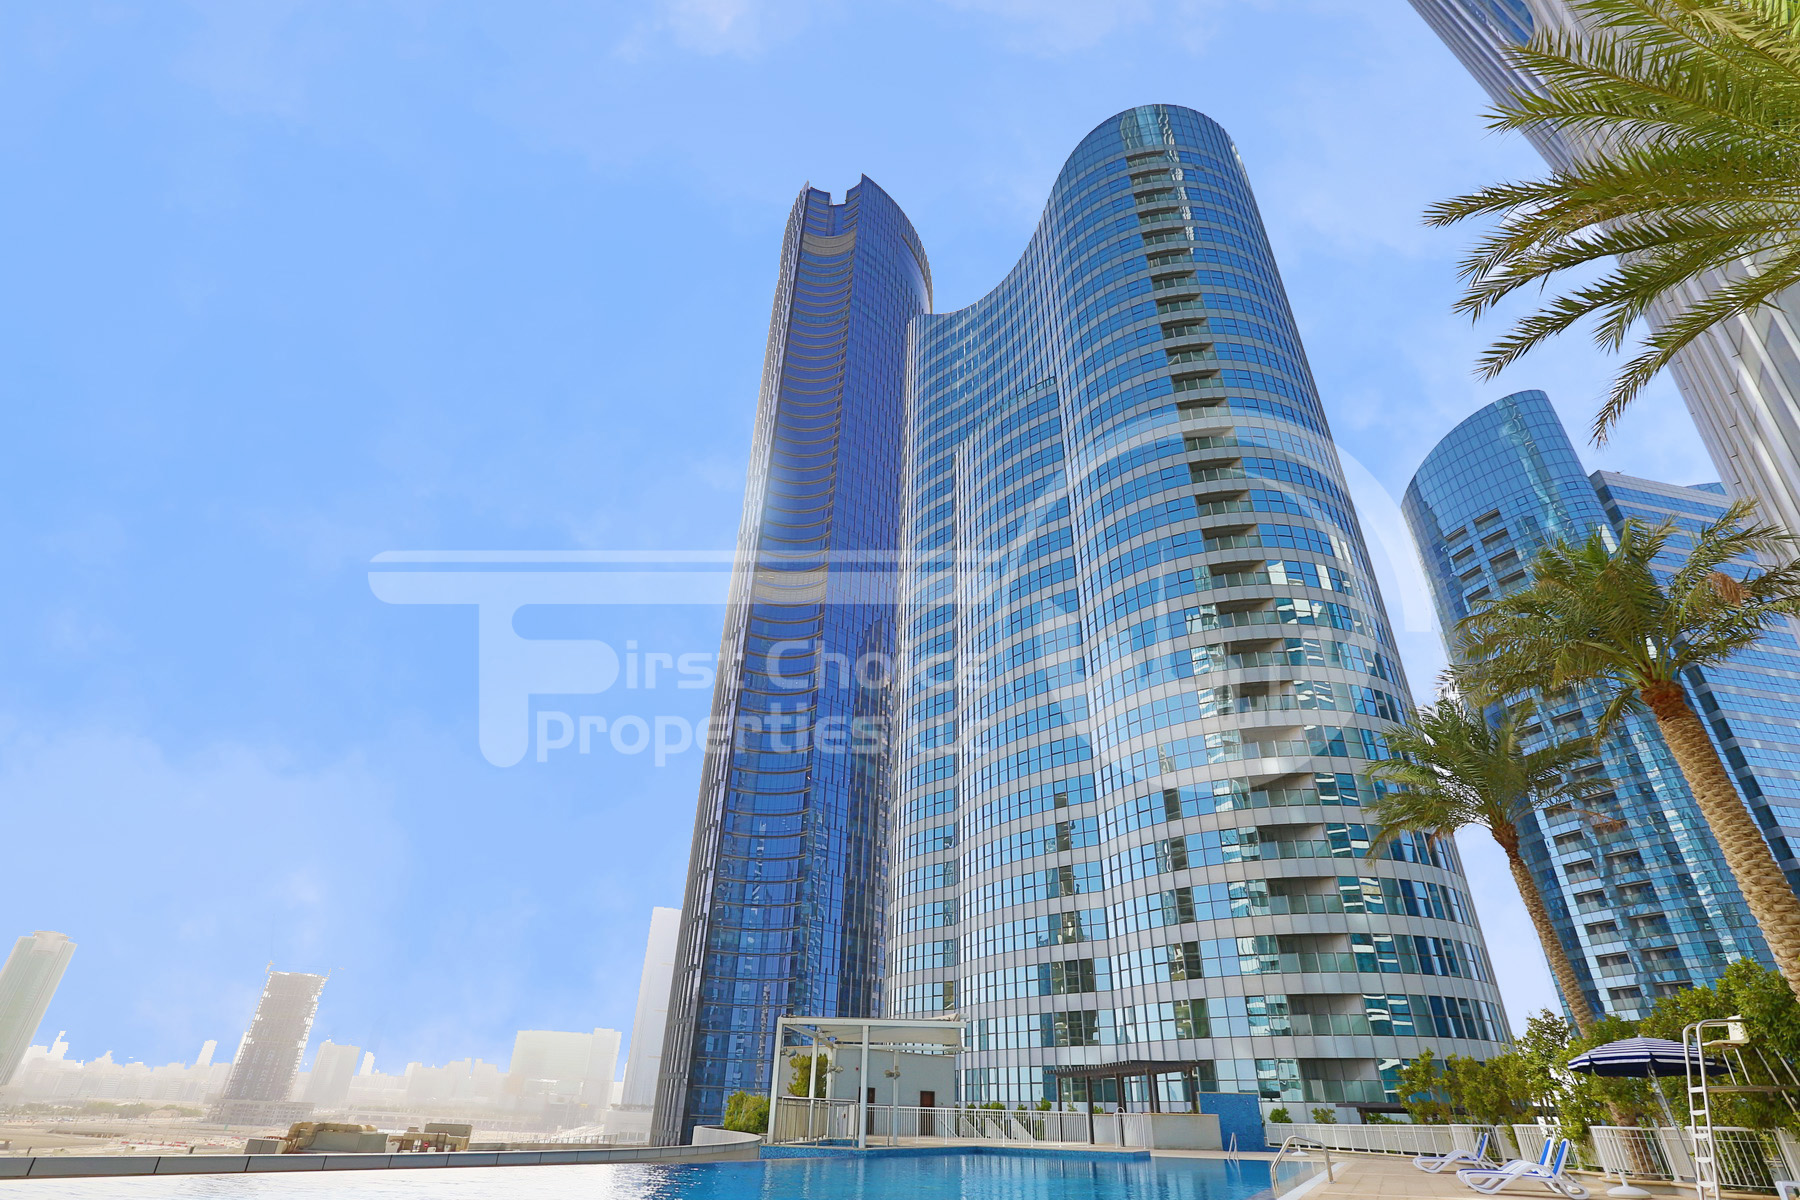 Studio - 1BR - 2BR - 3BR Apartment - Abu Dhabi - UAE - Al Reem Island - City of Lights - C2 Building - C3 Building - Outside View (32).JPG